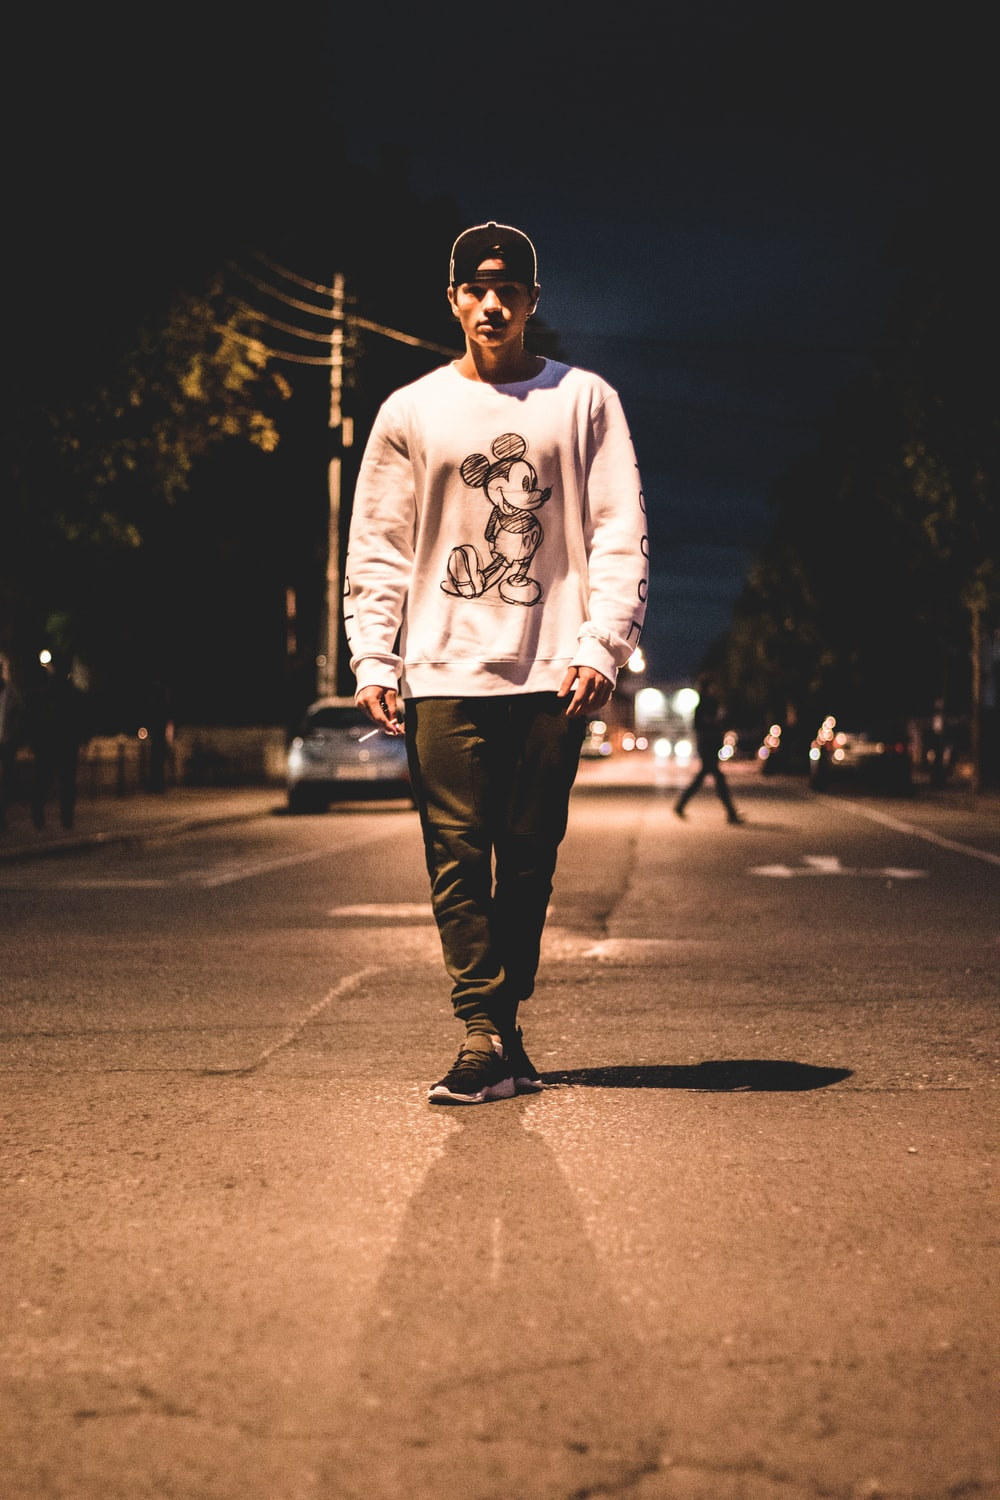 man standing in the middle of road during nighttime